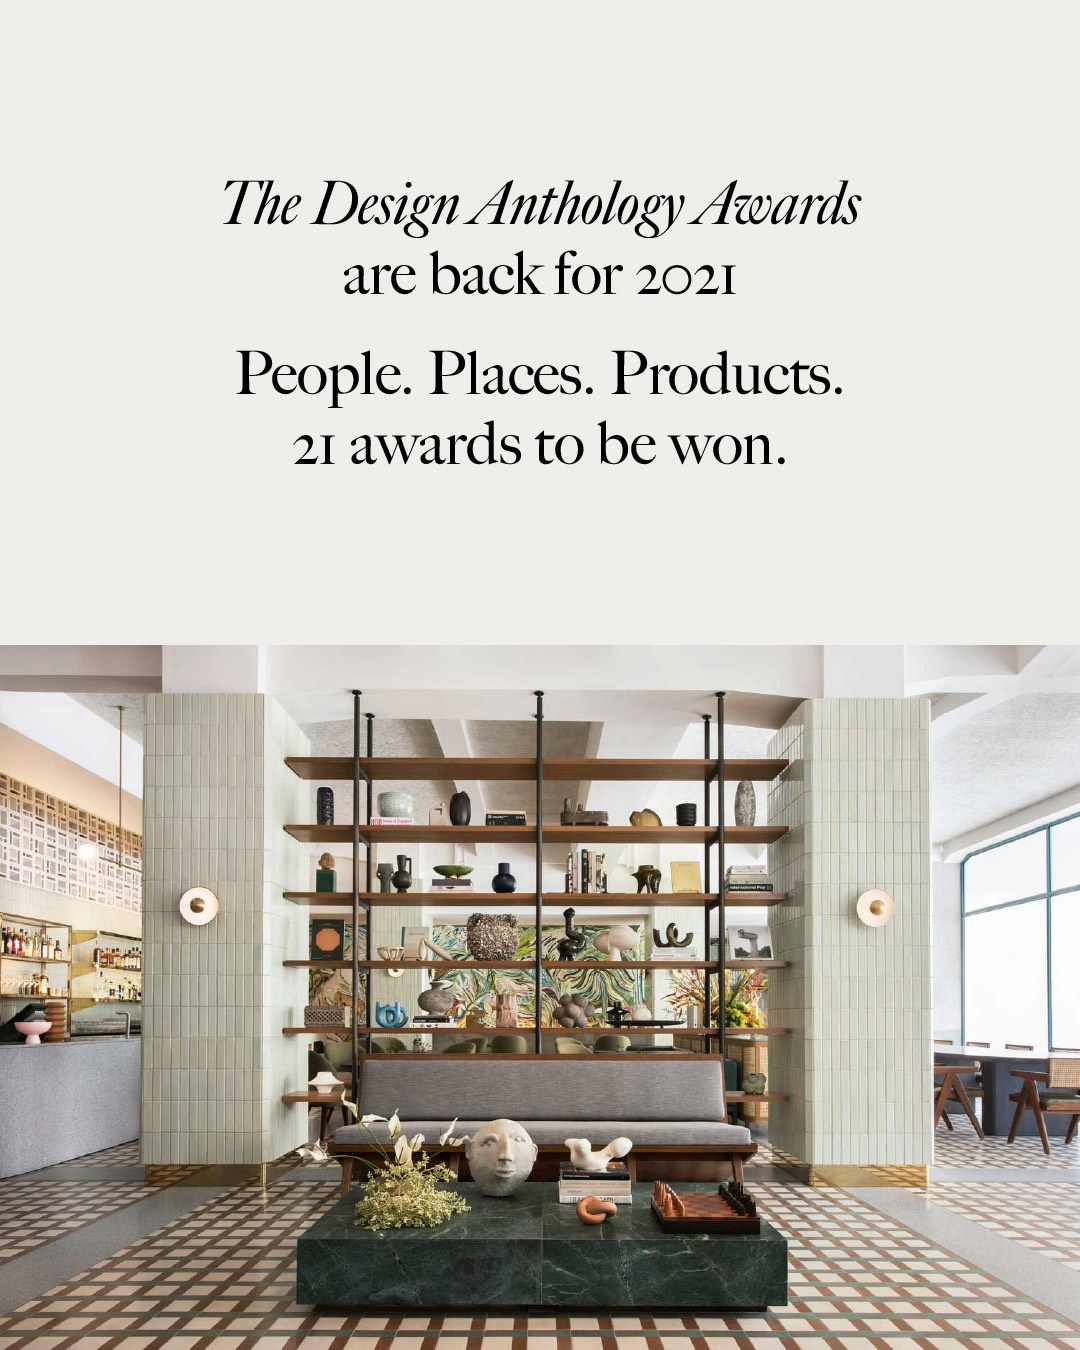 The Design Anthorogy Awards are back for 2021